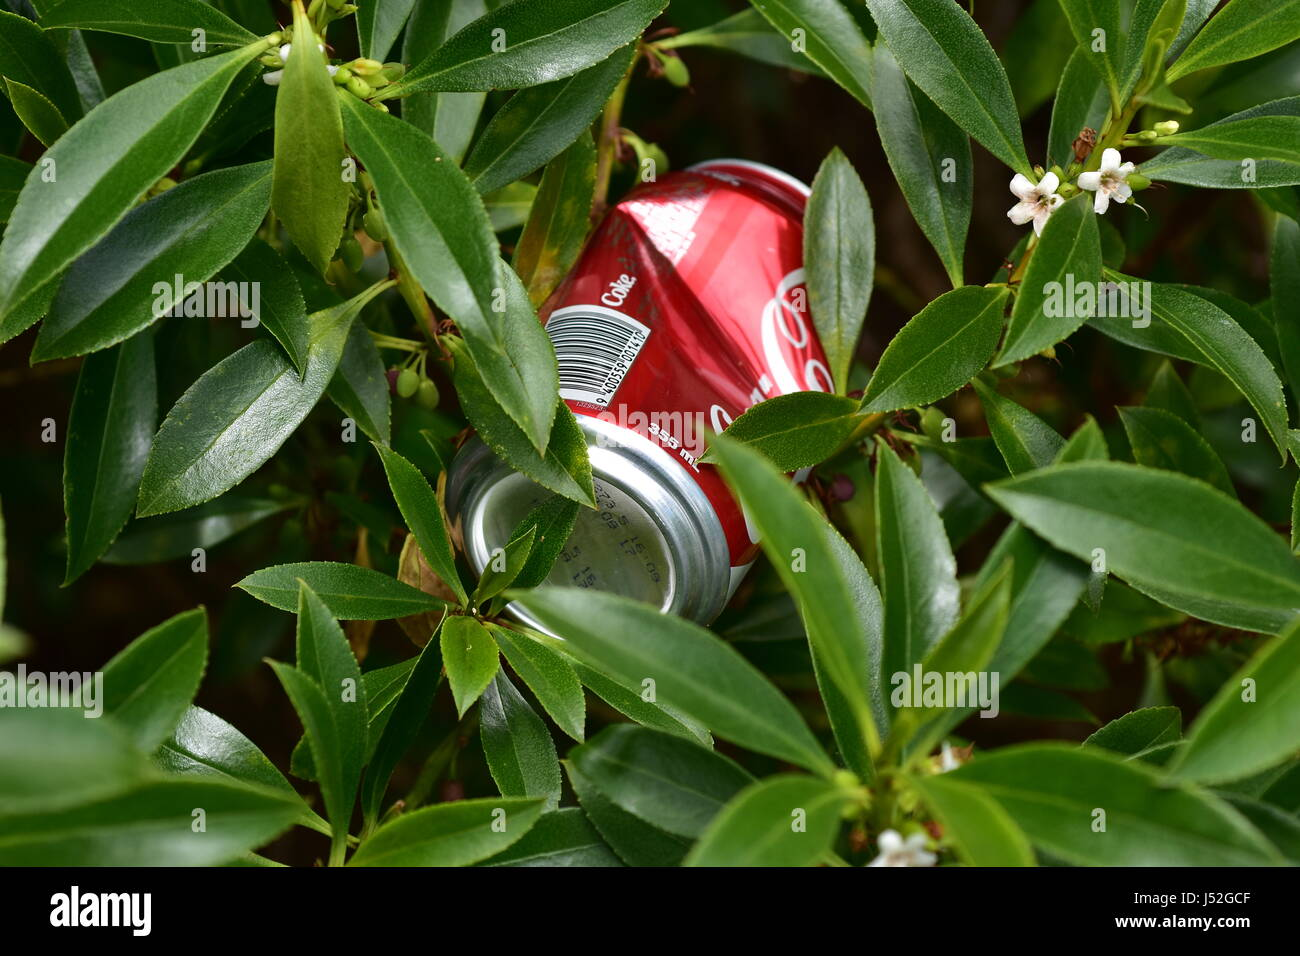 Coca-Cola drink can thrown out among greenery. - Stock Image